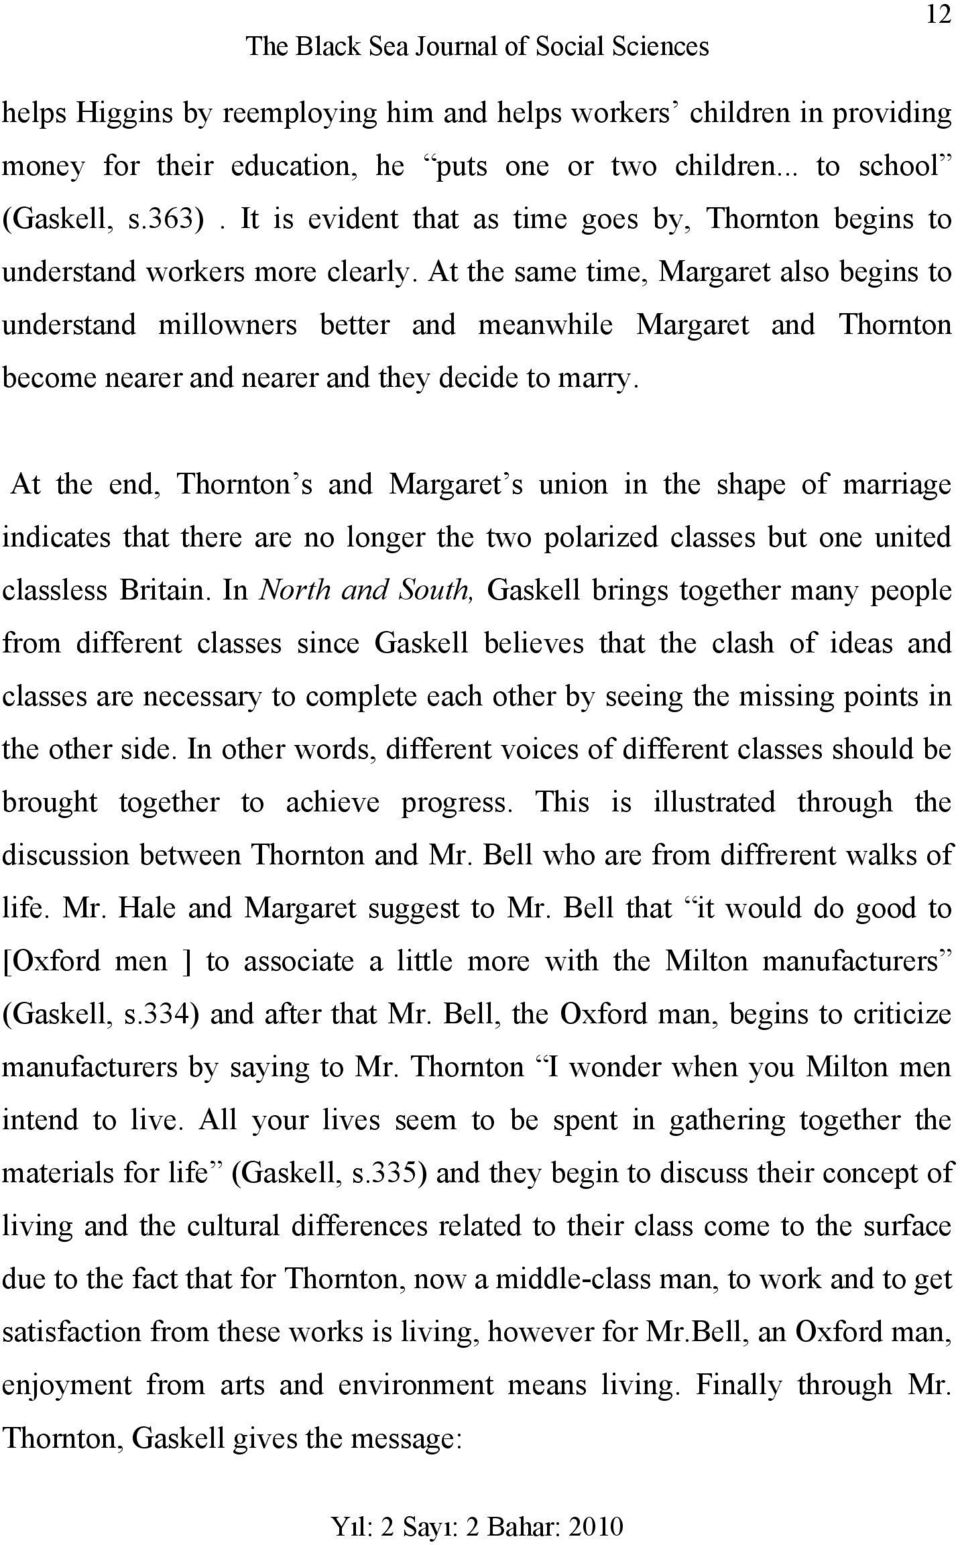 At the same time, Margaret also begins to understand millowners better and meanwhile Margaret and Thornton become nearer and nearer and they decide to marry.